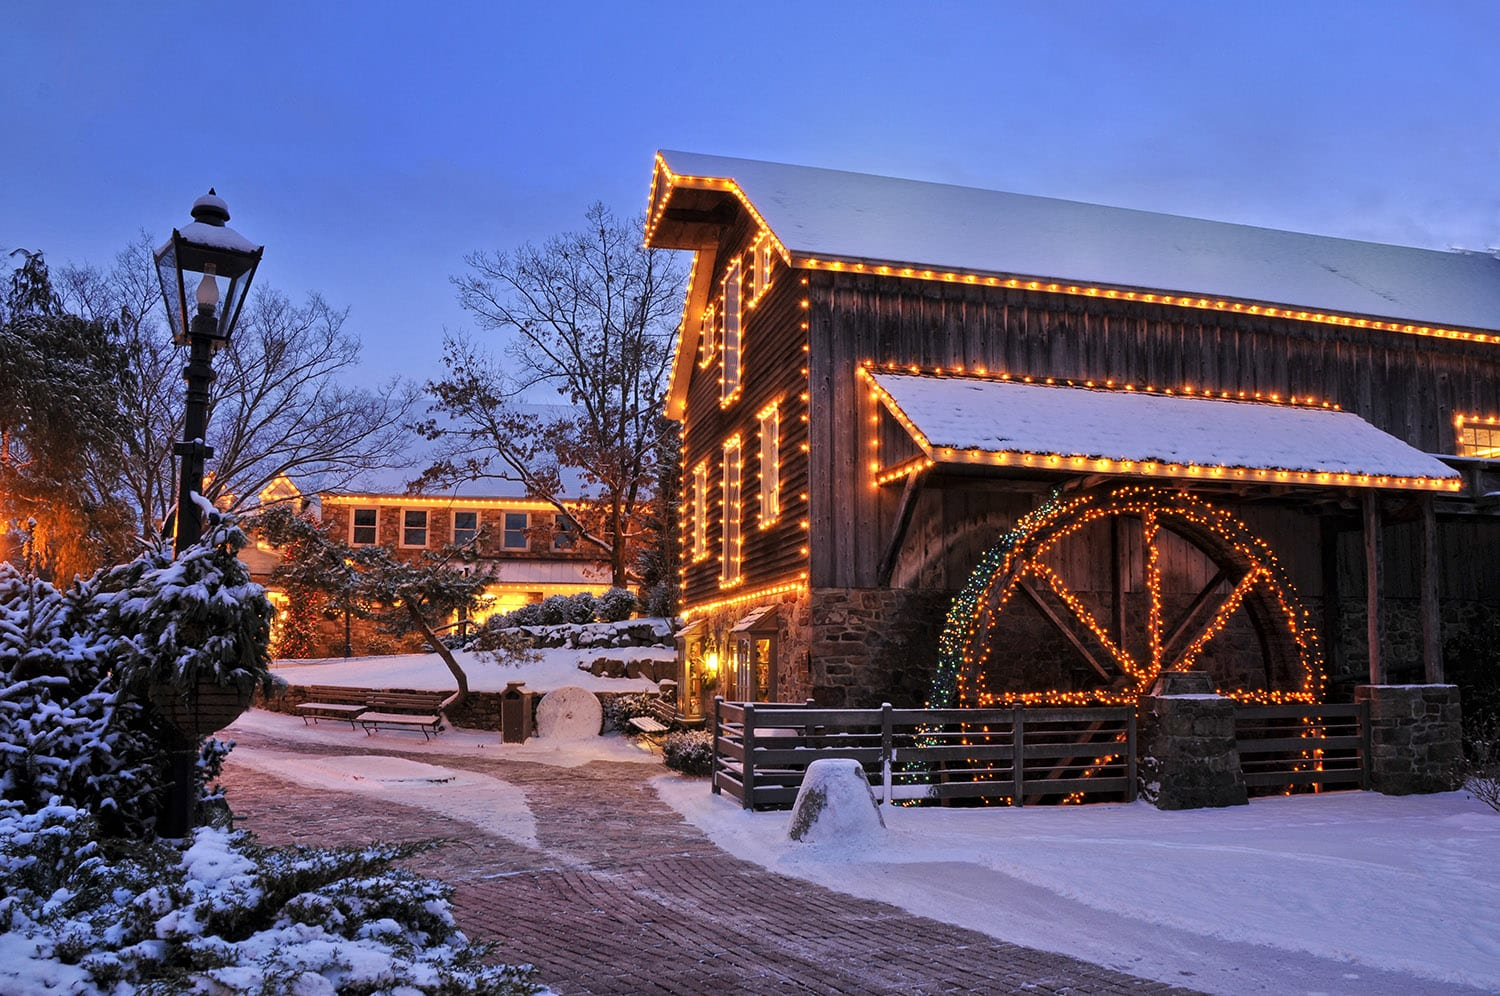 Peddler's Village at the Holidays